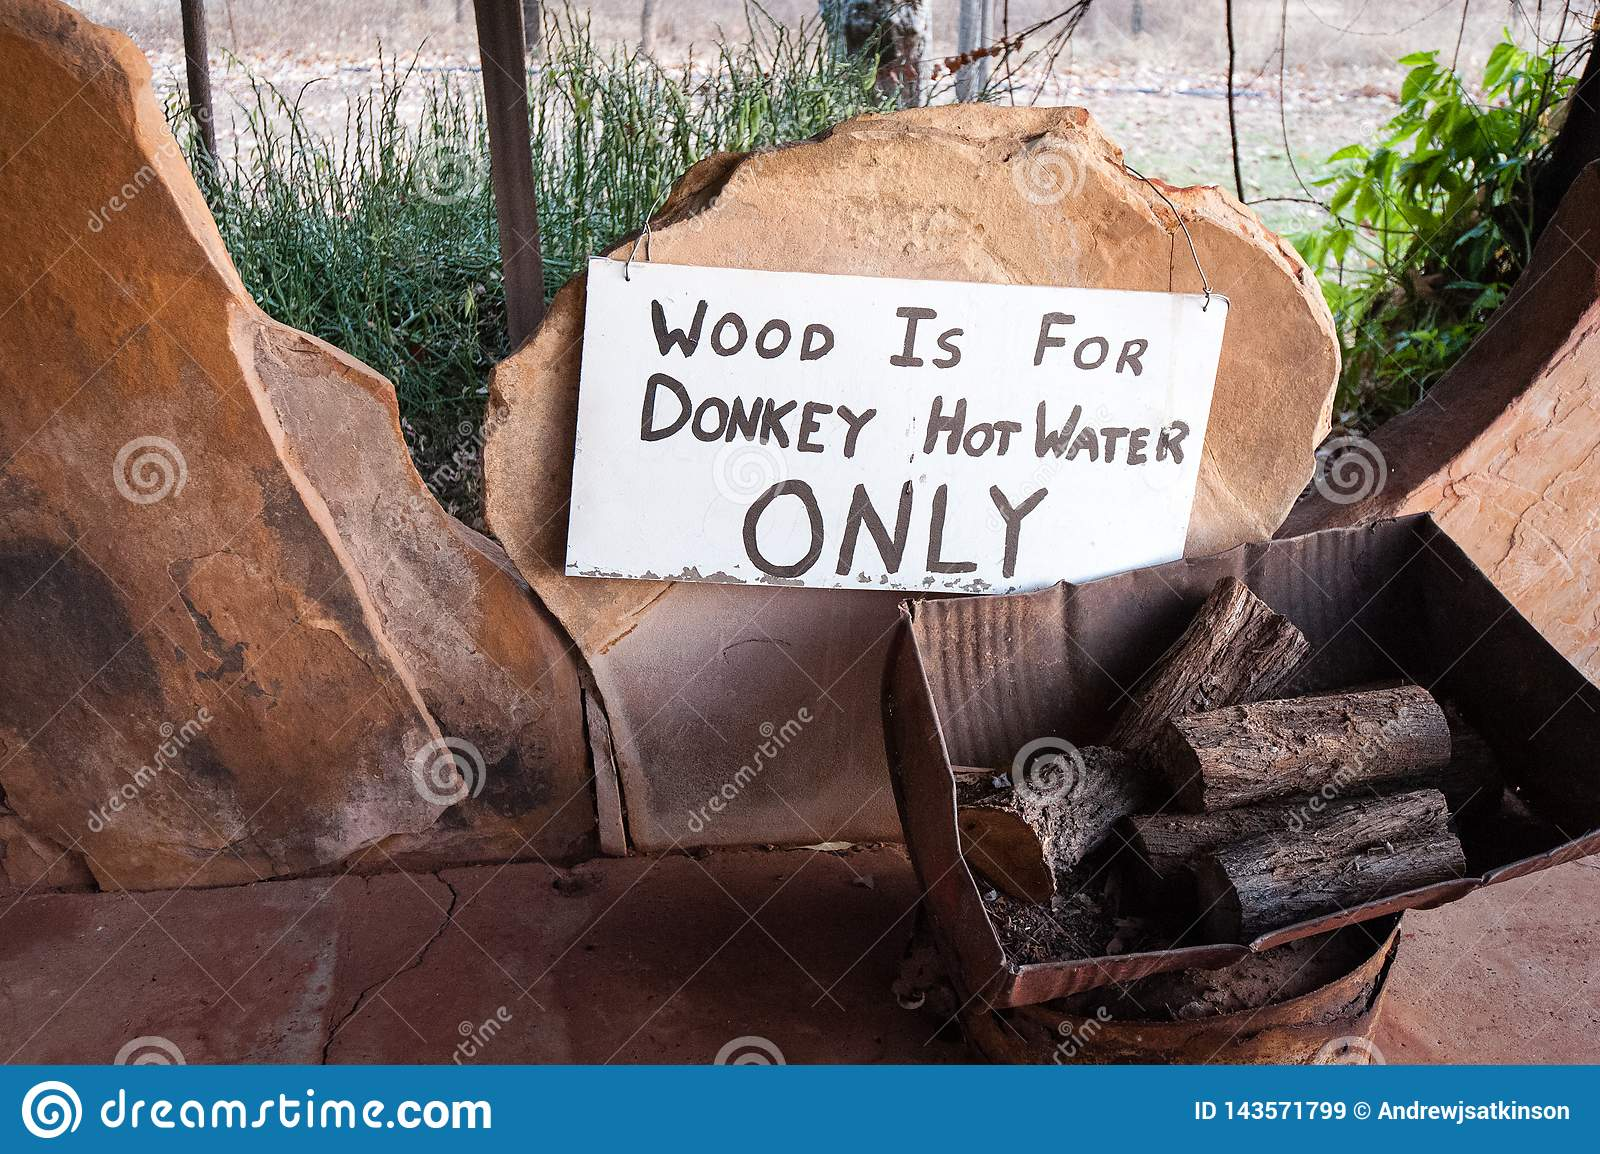 Wood pile labeled for use in the donkey hot water system